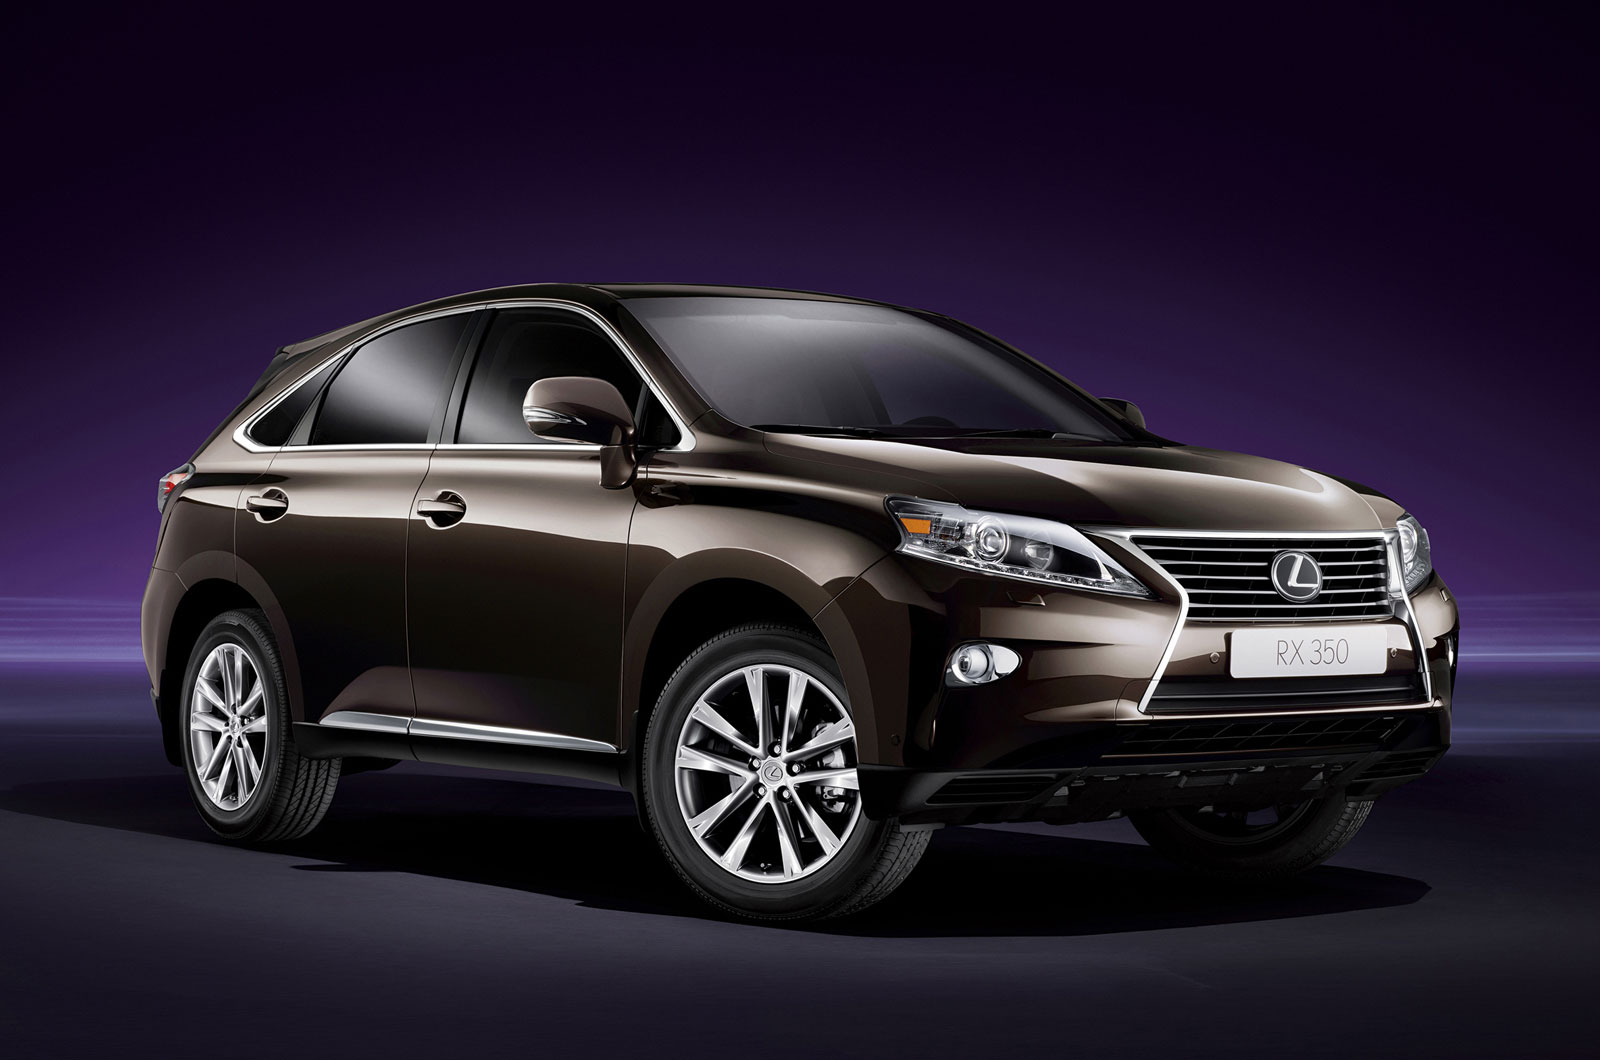 Lexus Rx 350 2013 Technical Specifications Interior And Exterior Photo